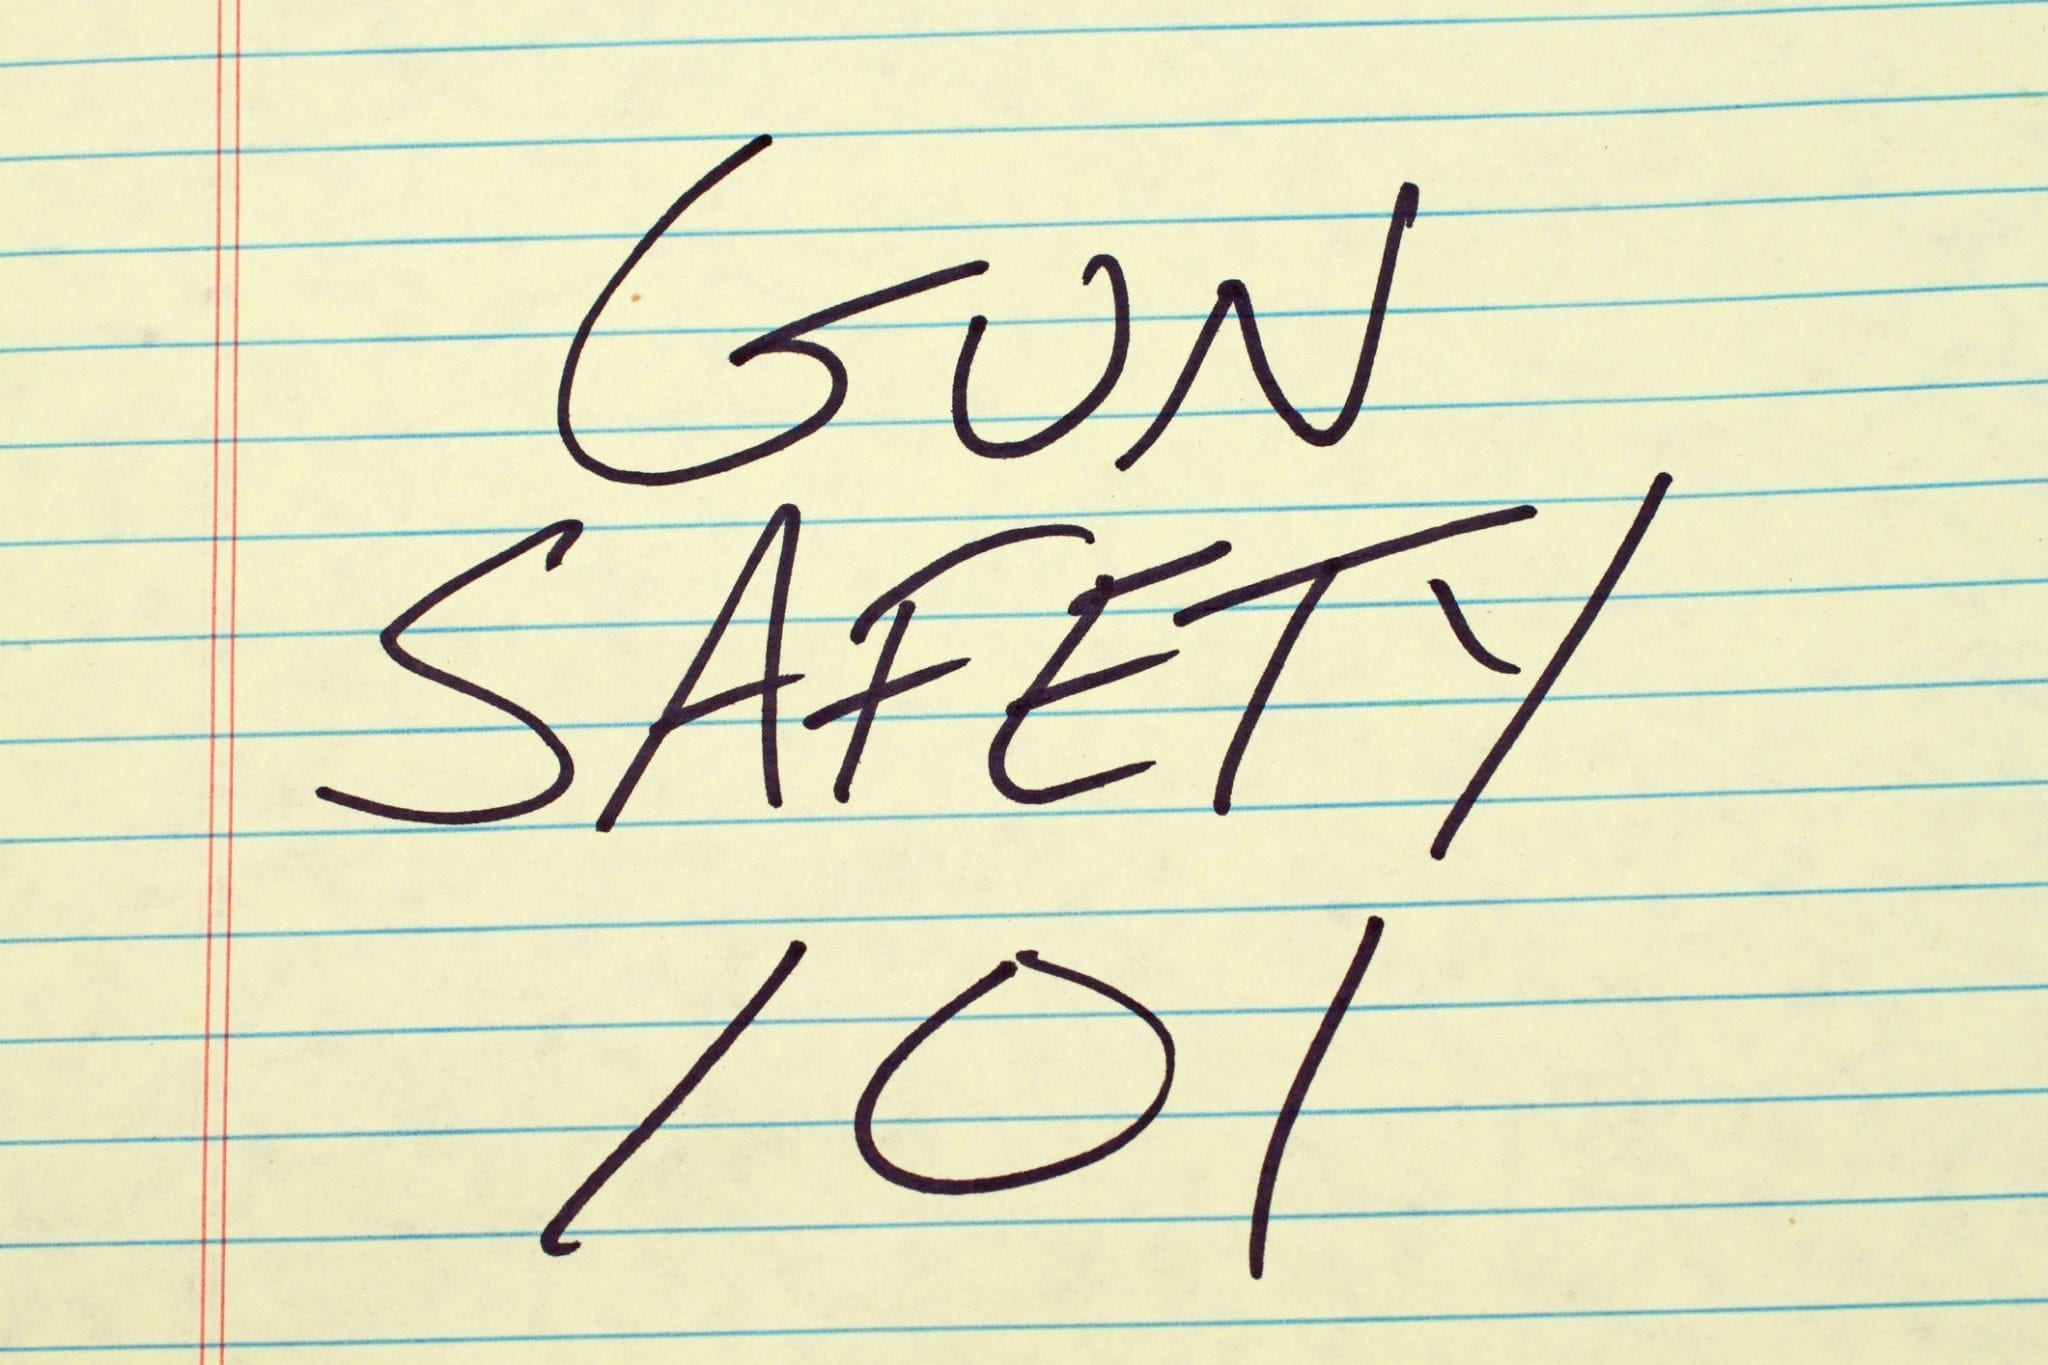 5 FIREARM SAFETY TIPS FOR ON & OFF THE FIRING RANGE